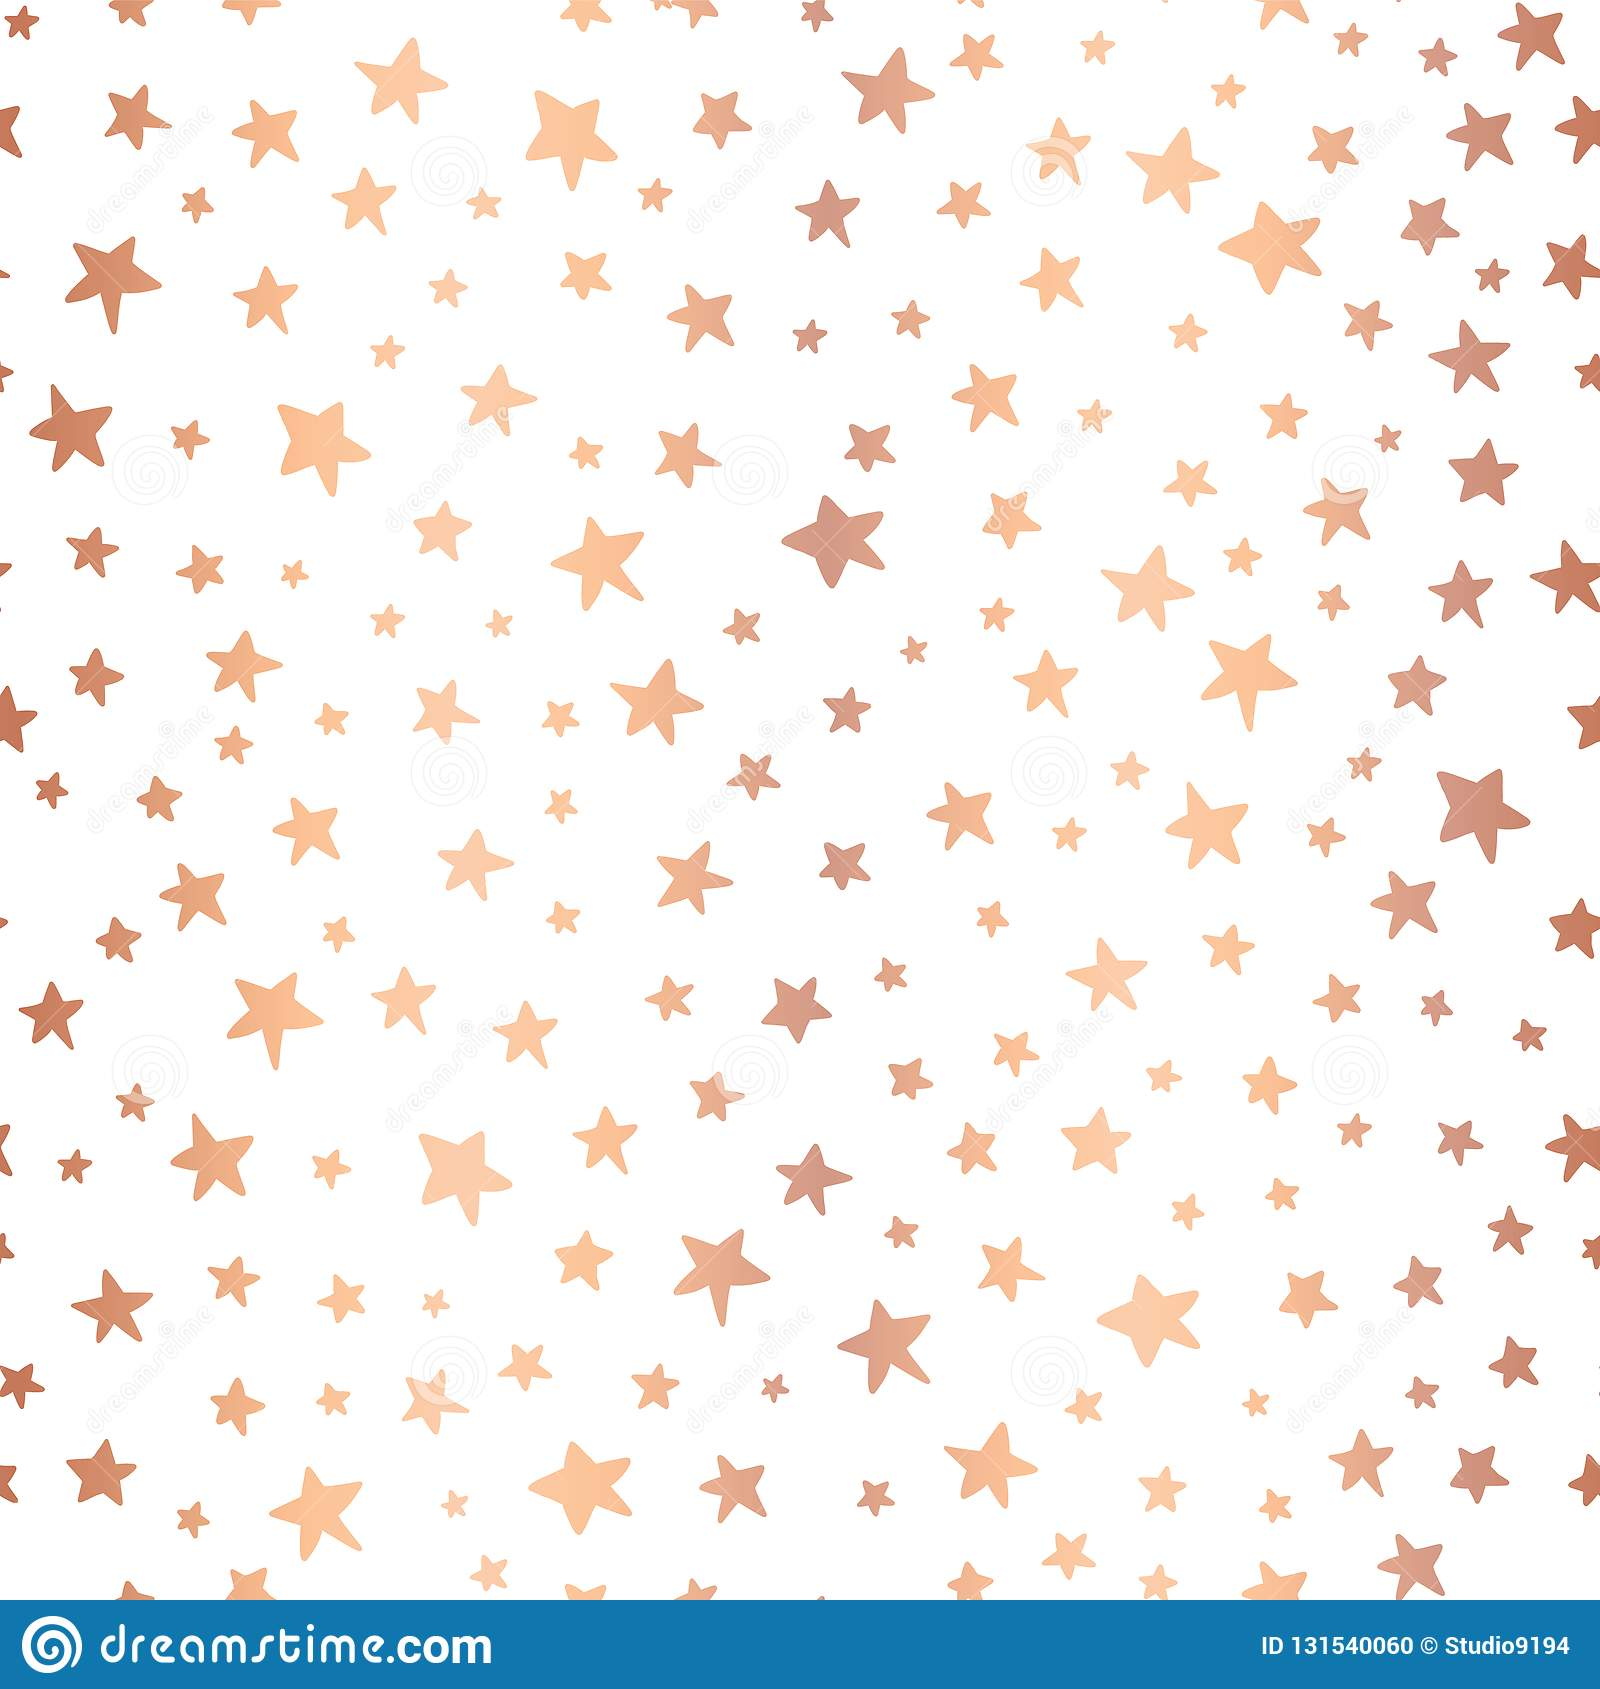 Handdrawn Stars Rose Gold Foil Vector Background Seamless Pattern